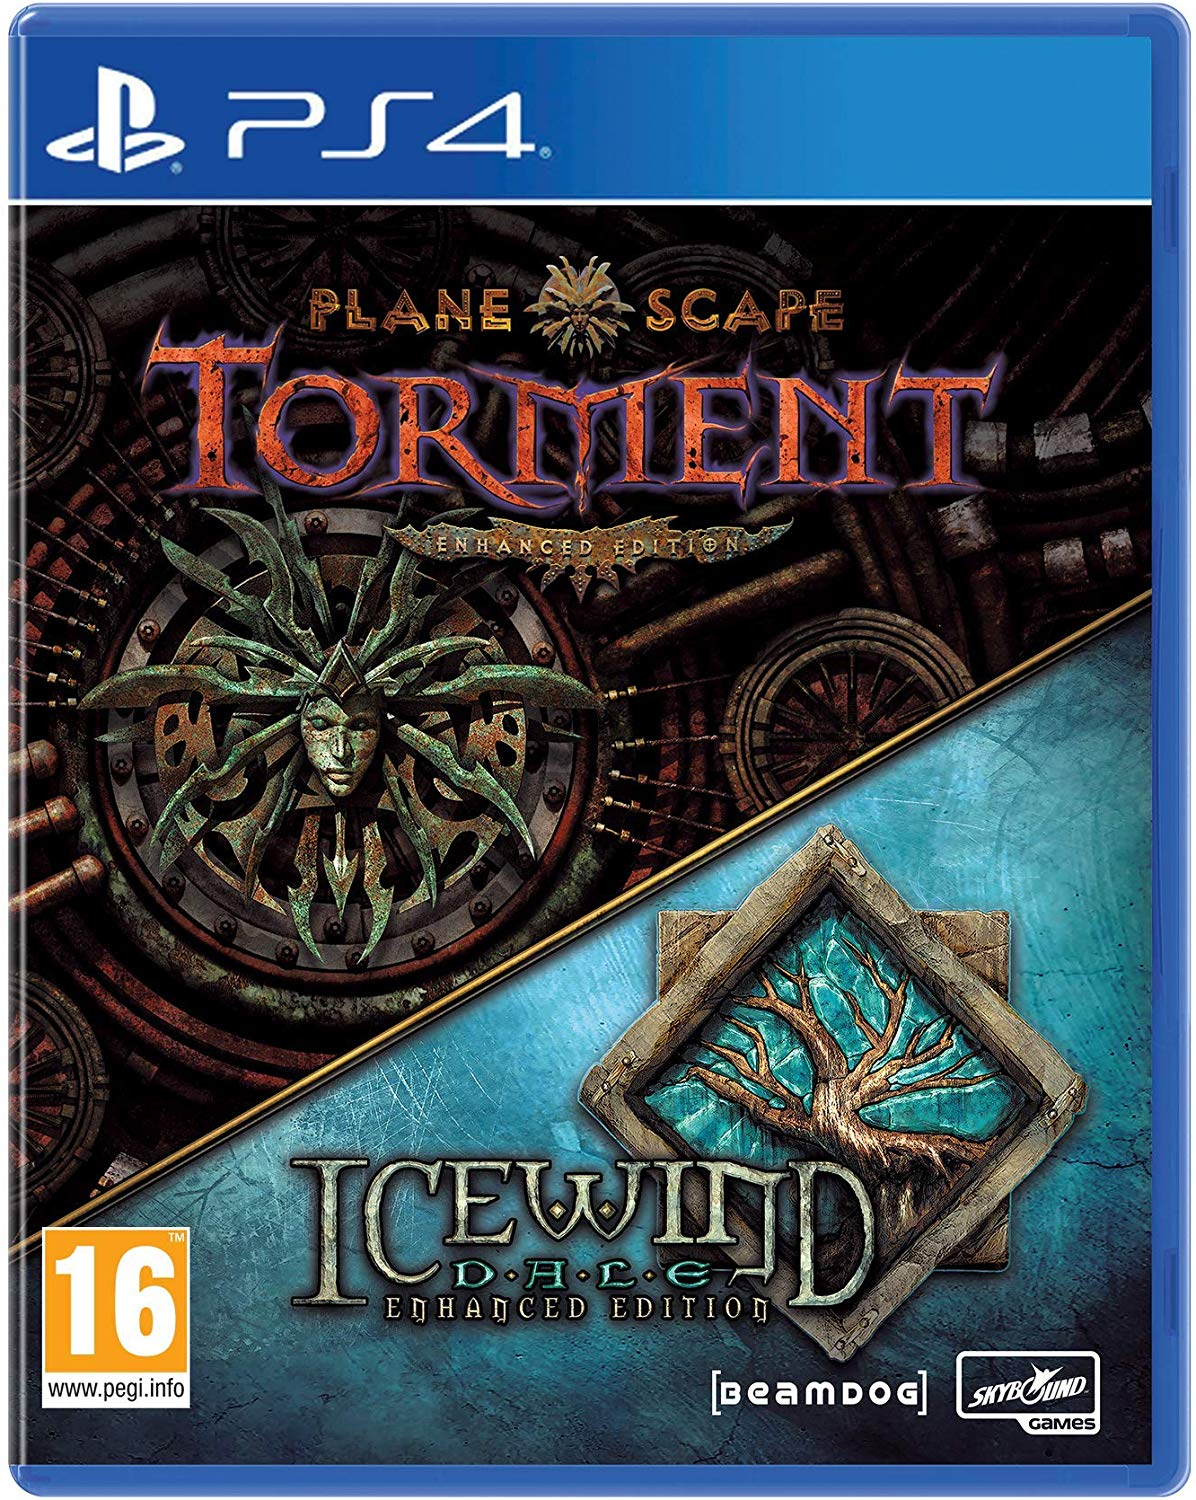 Planescape Torment + Icewind Dale Enhanced Edition